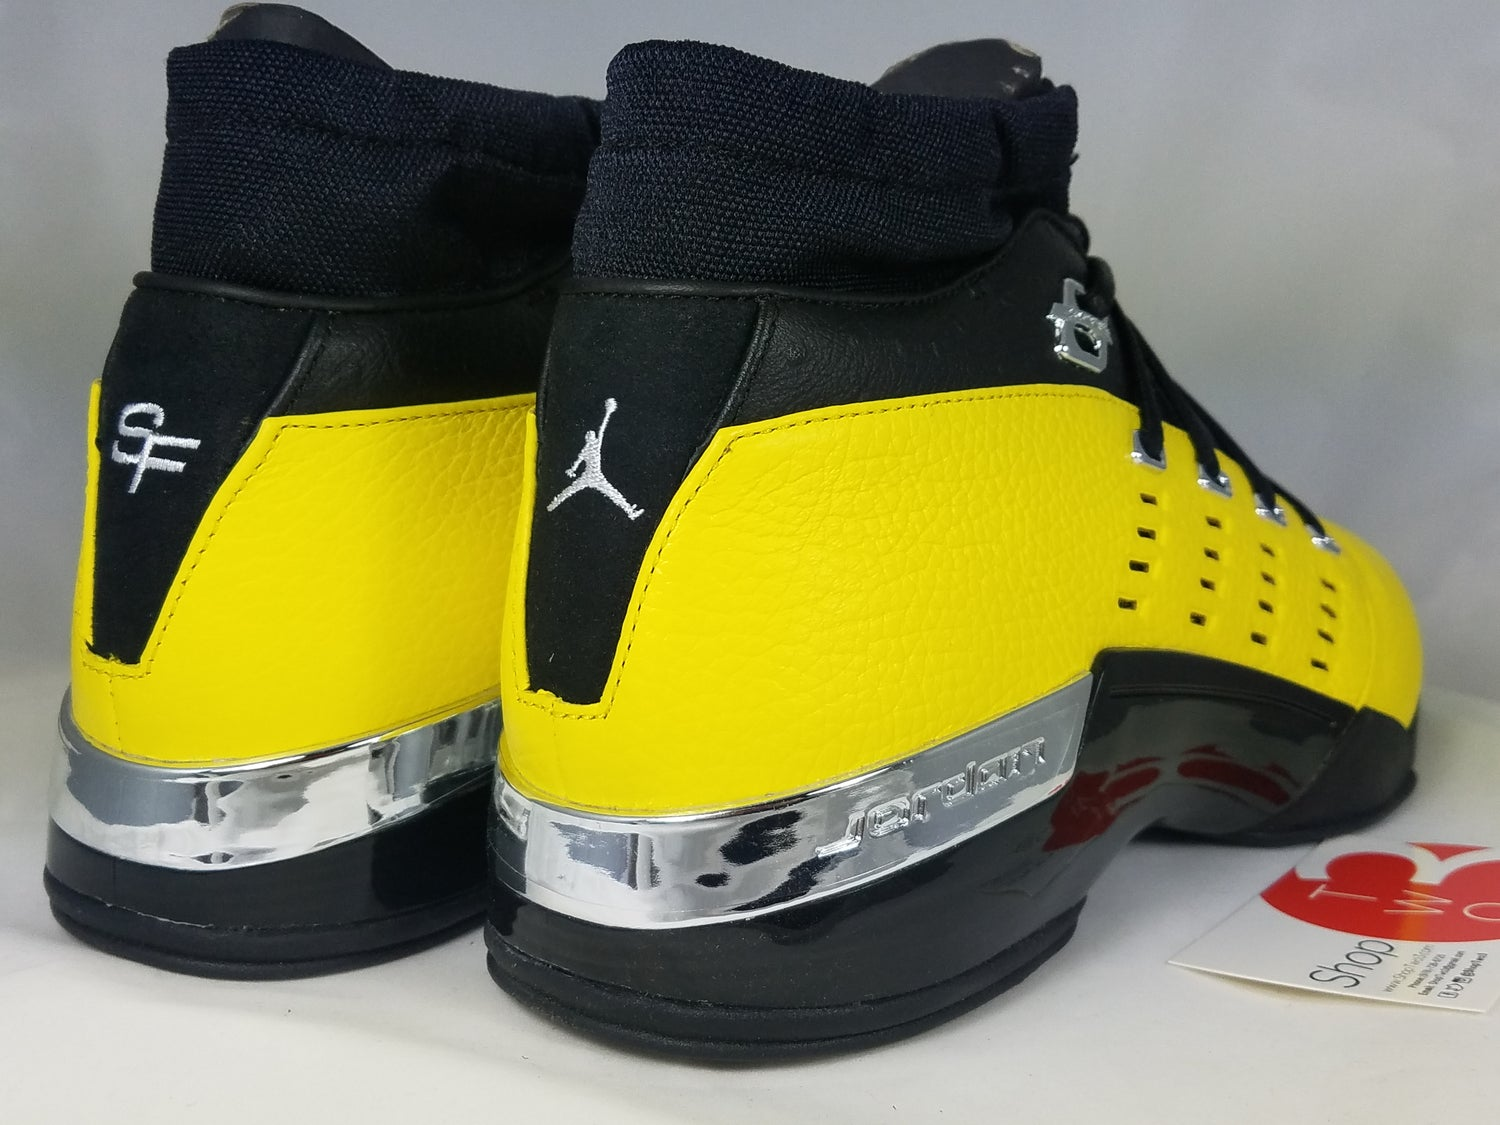 8edf897e0a1 Image of Jordan 17 Retro Low SoleFly Alternate Lightning. 10. Add to Cart. DS  Size 10